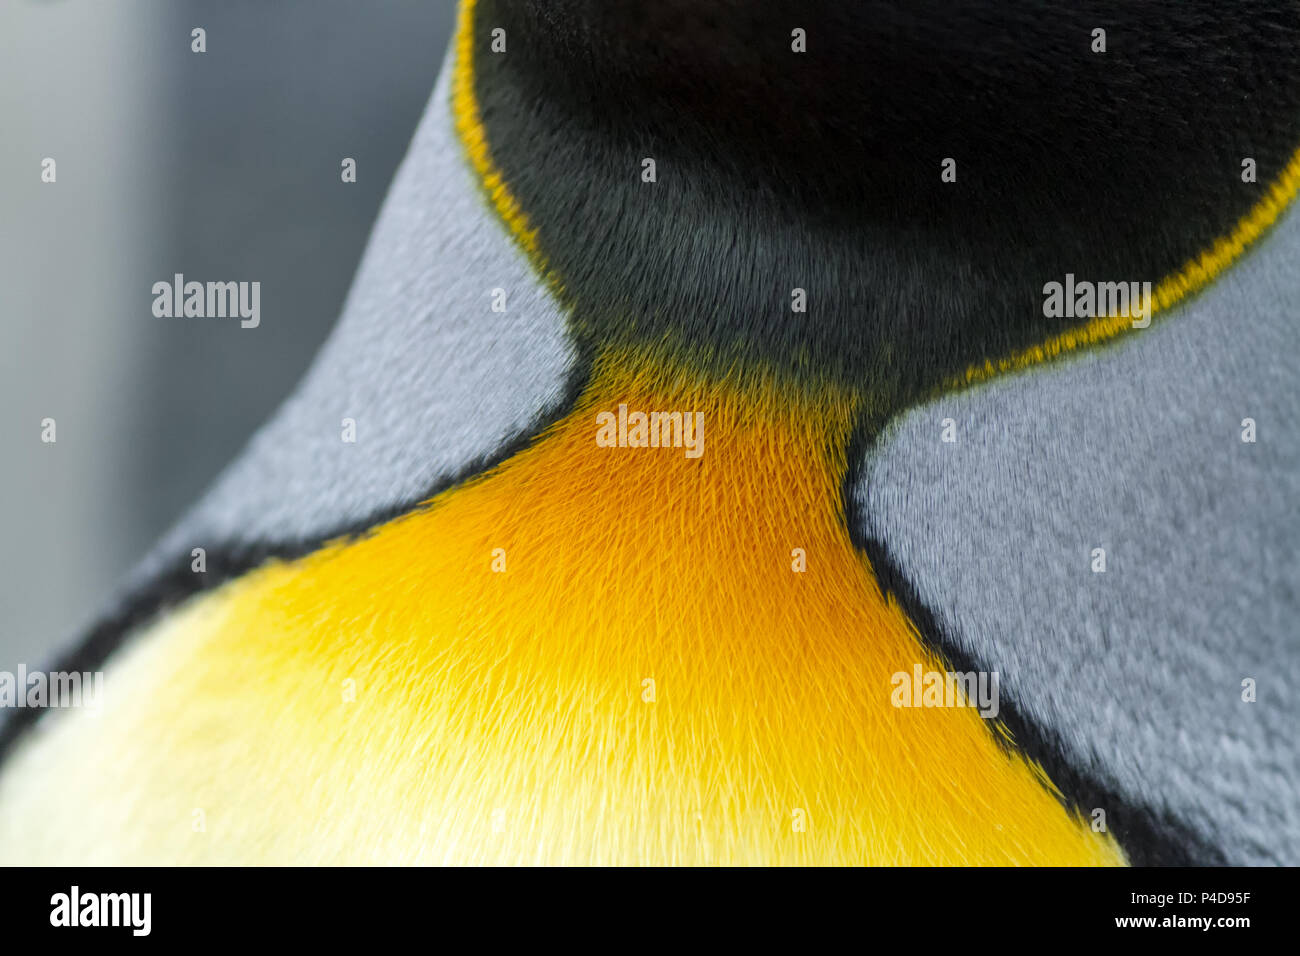 King Penguin close-up of colourful neck feathers - Stock Image